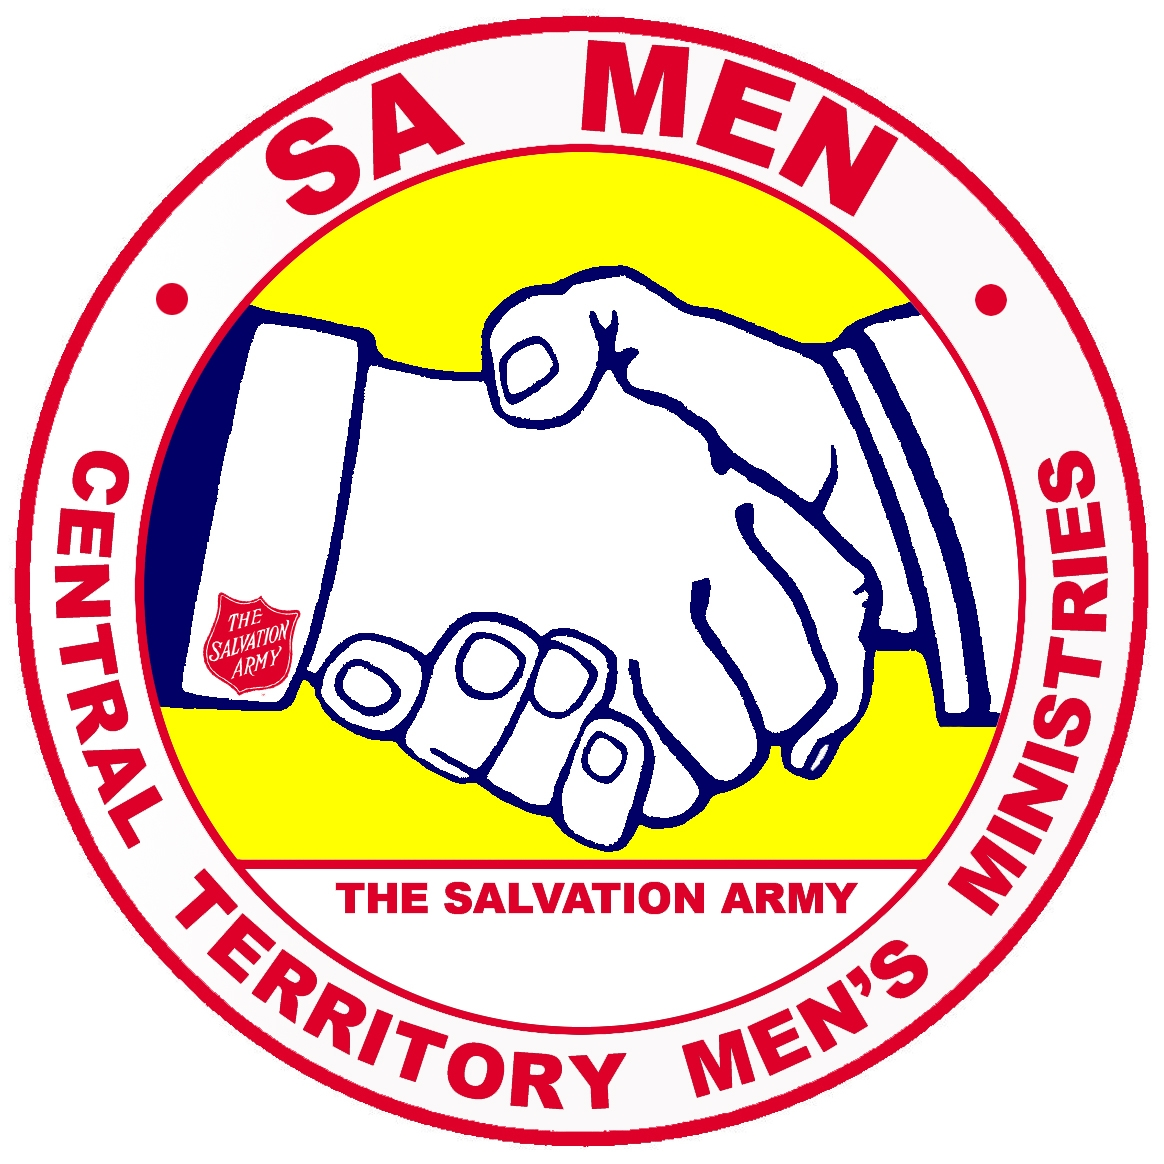 Lansing mens fellowship the salvation army mens fellowship club provides fellowship in a christian atmosphere to enhance the congregation and to enrich the individual who attends biocorpaavc Choice Image